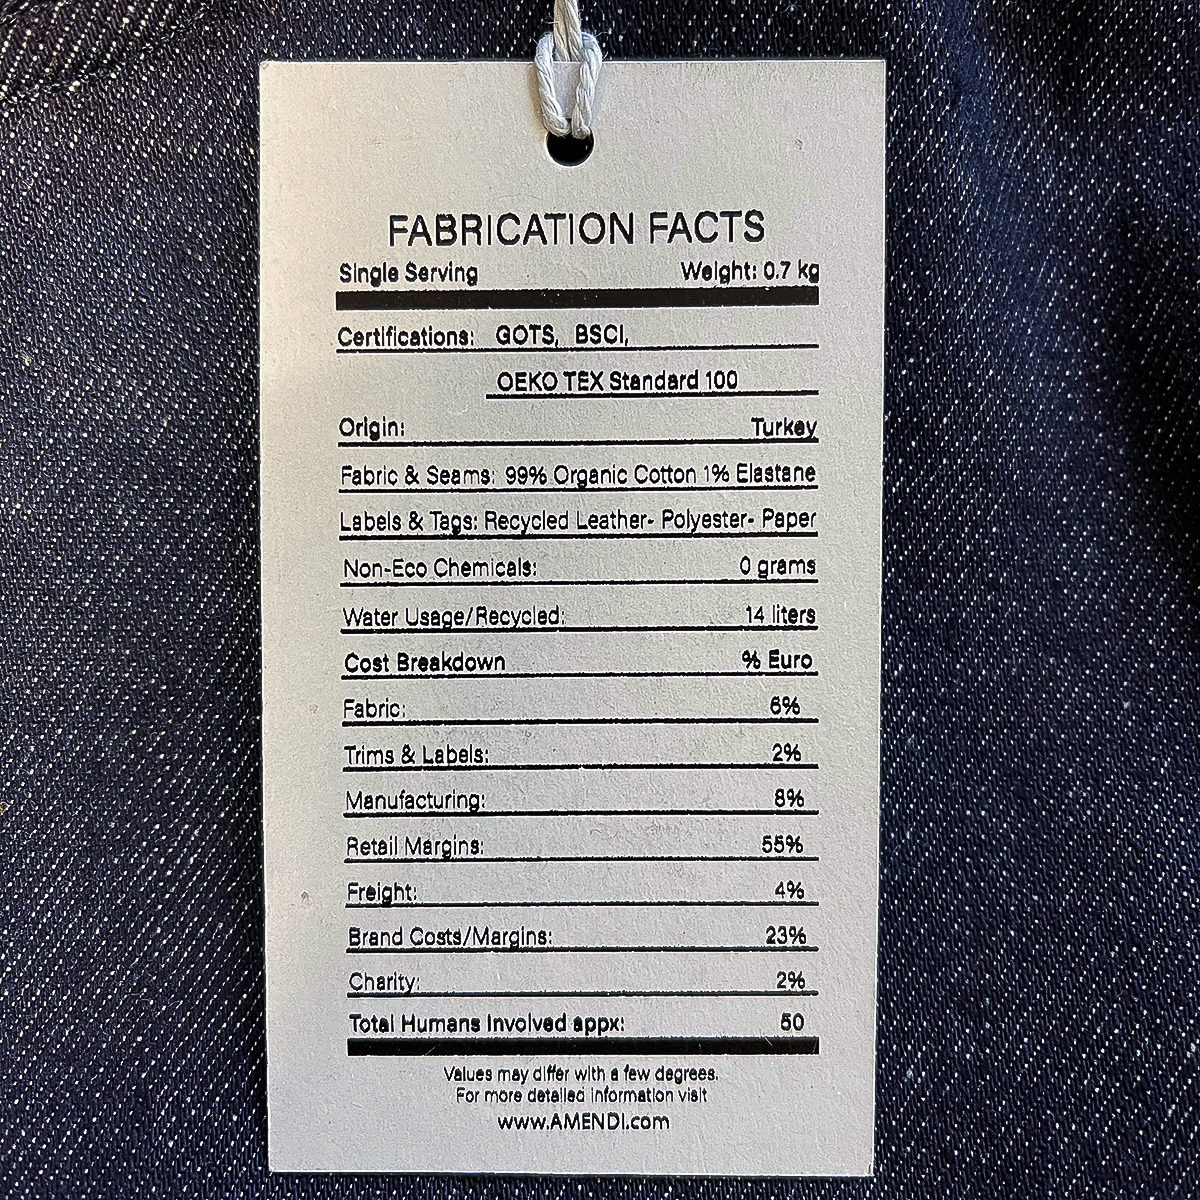 The fabrication facts tag